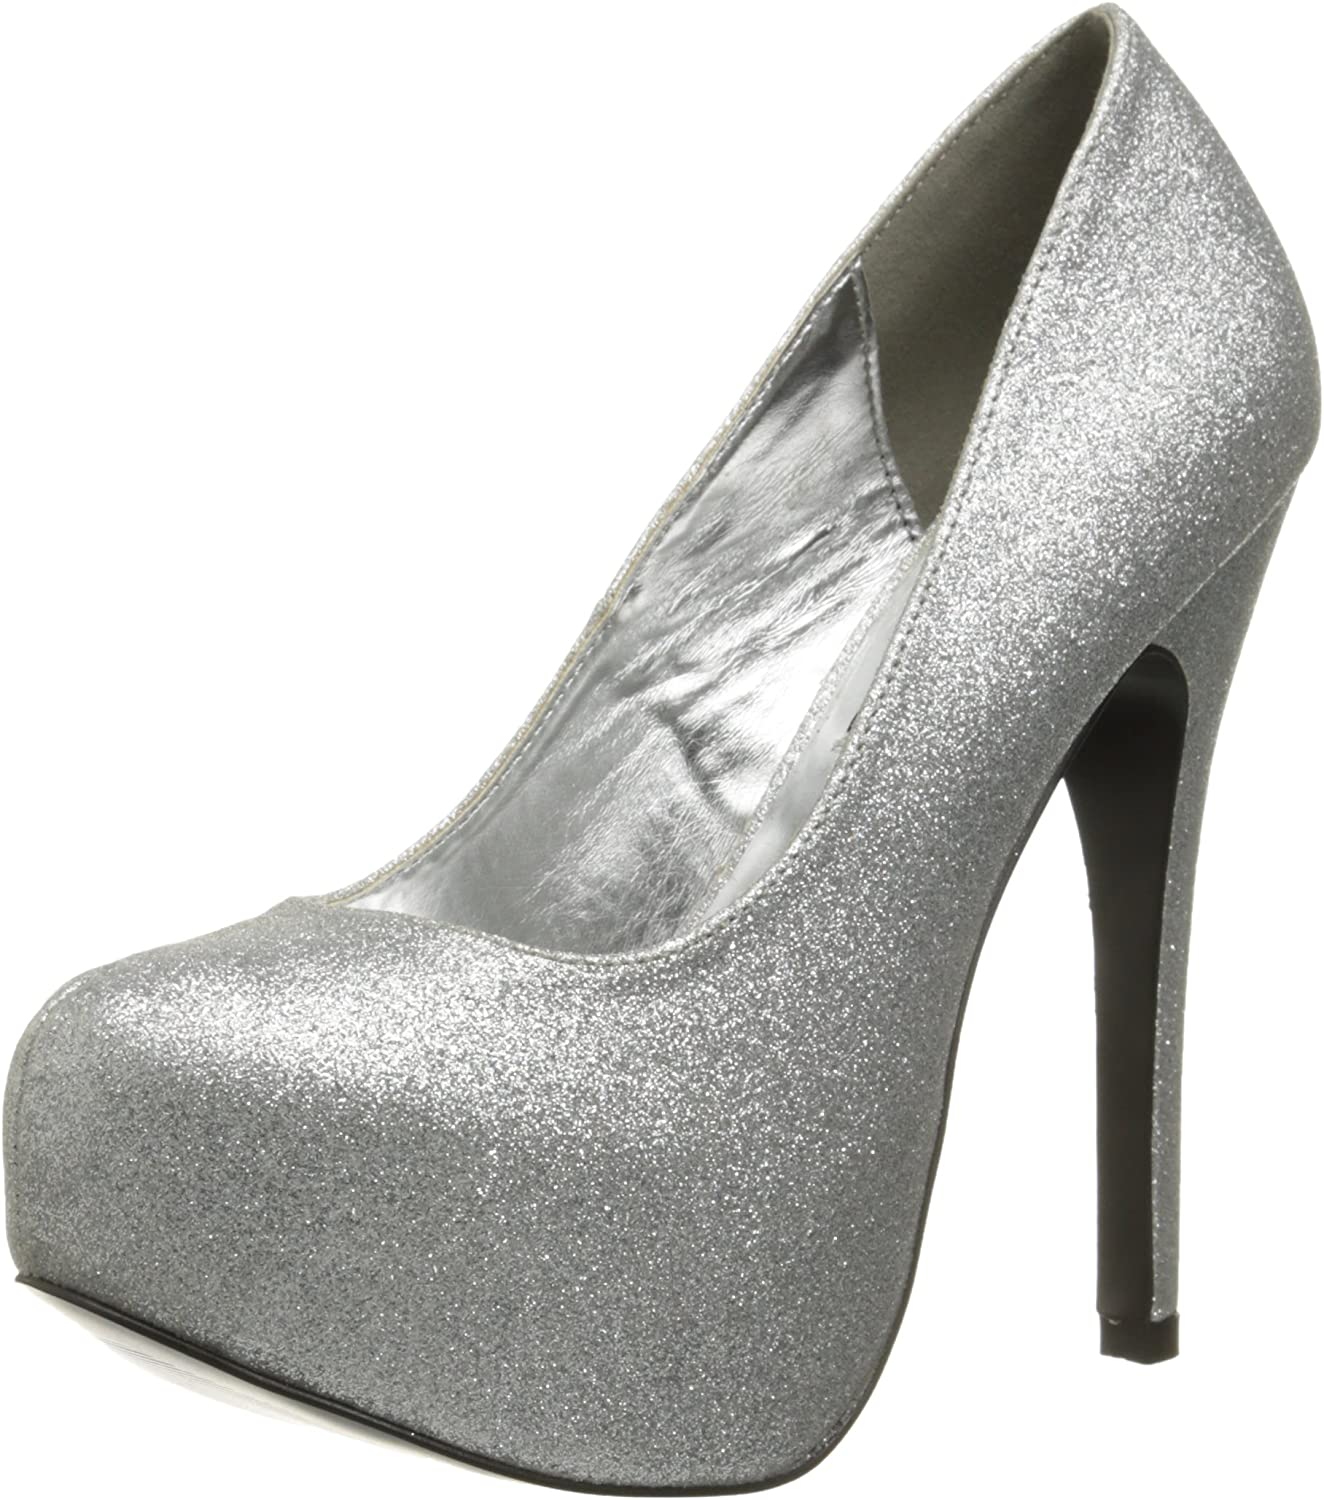 Highest Heel The Women's Kissable Pump